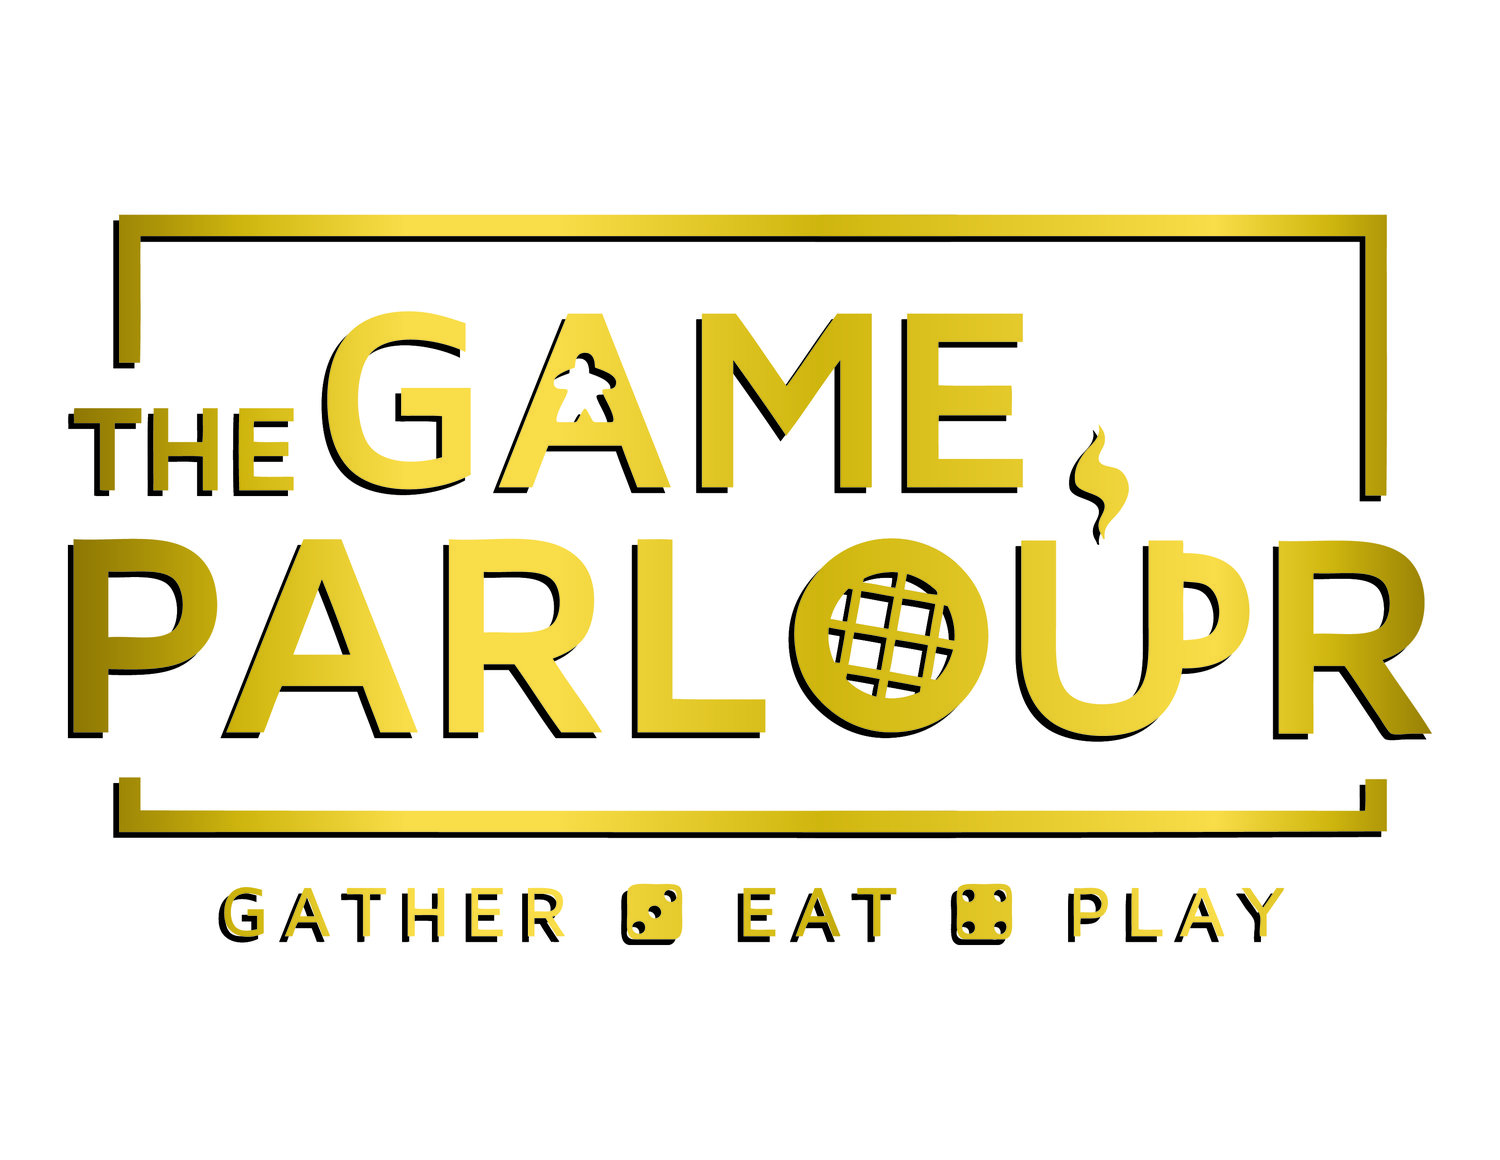 The Game Parlour